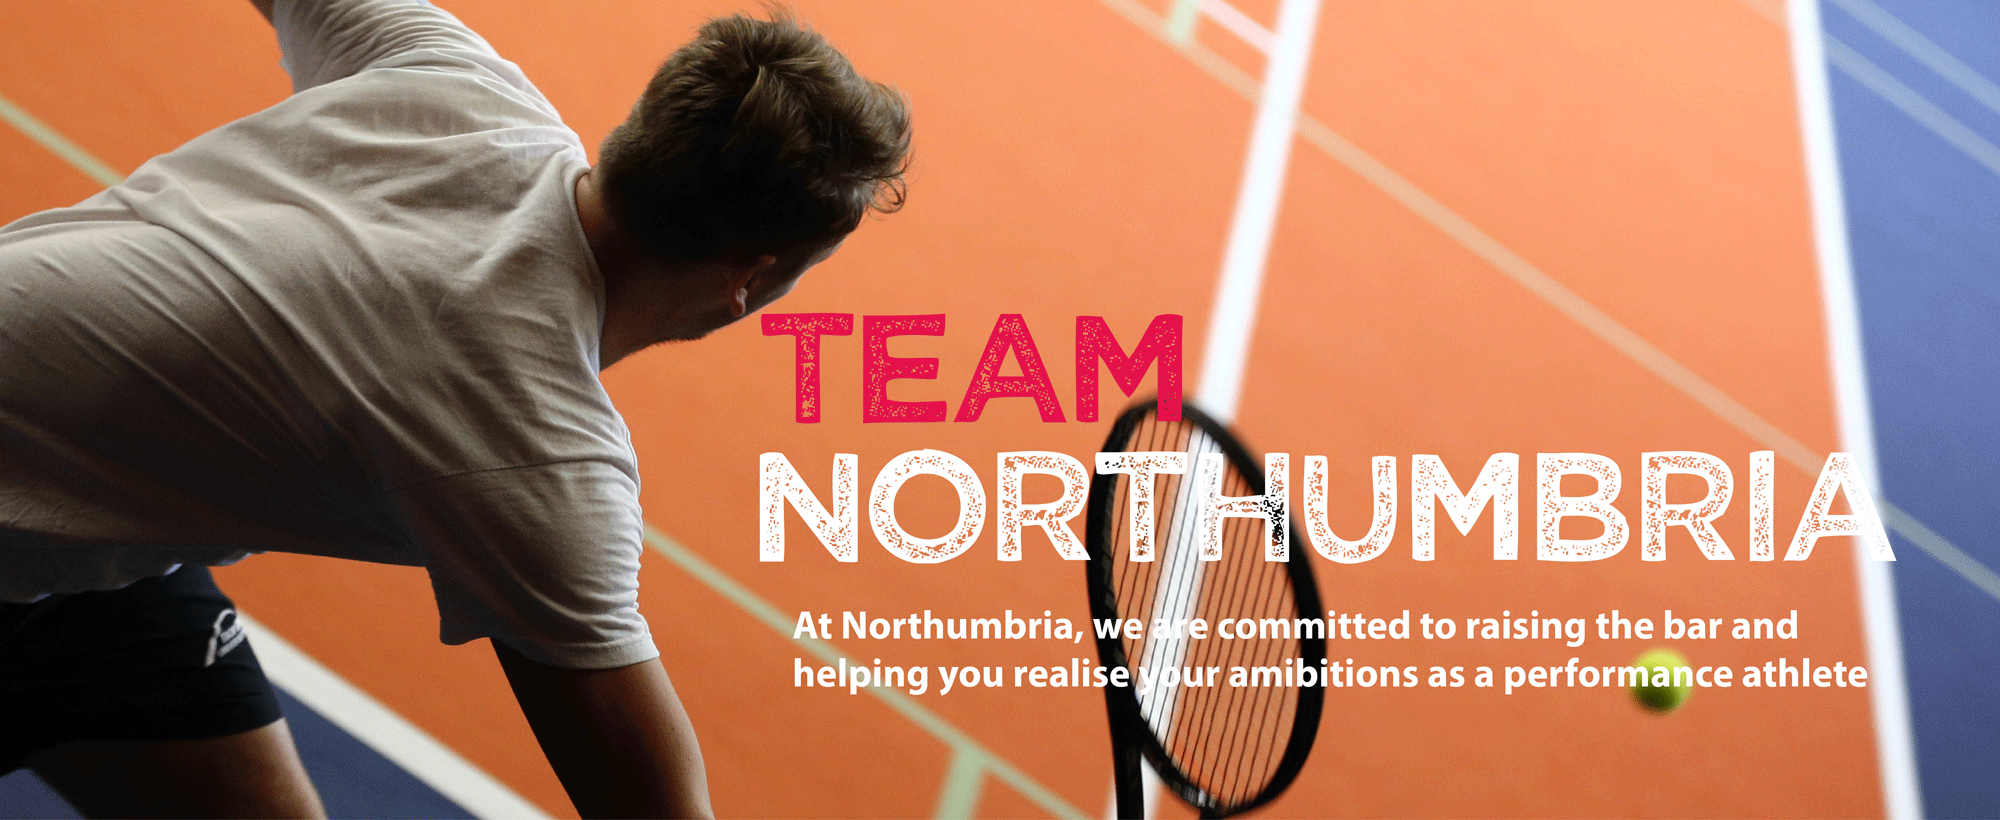 57ac8e6bf0879-team-northumbria-2_57ac8e6bf0518.gif